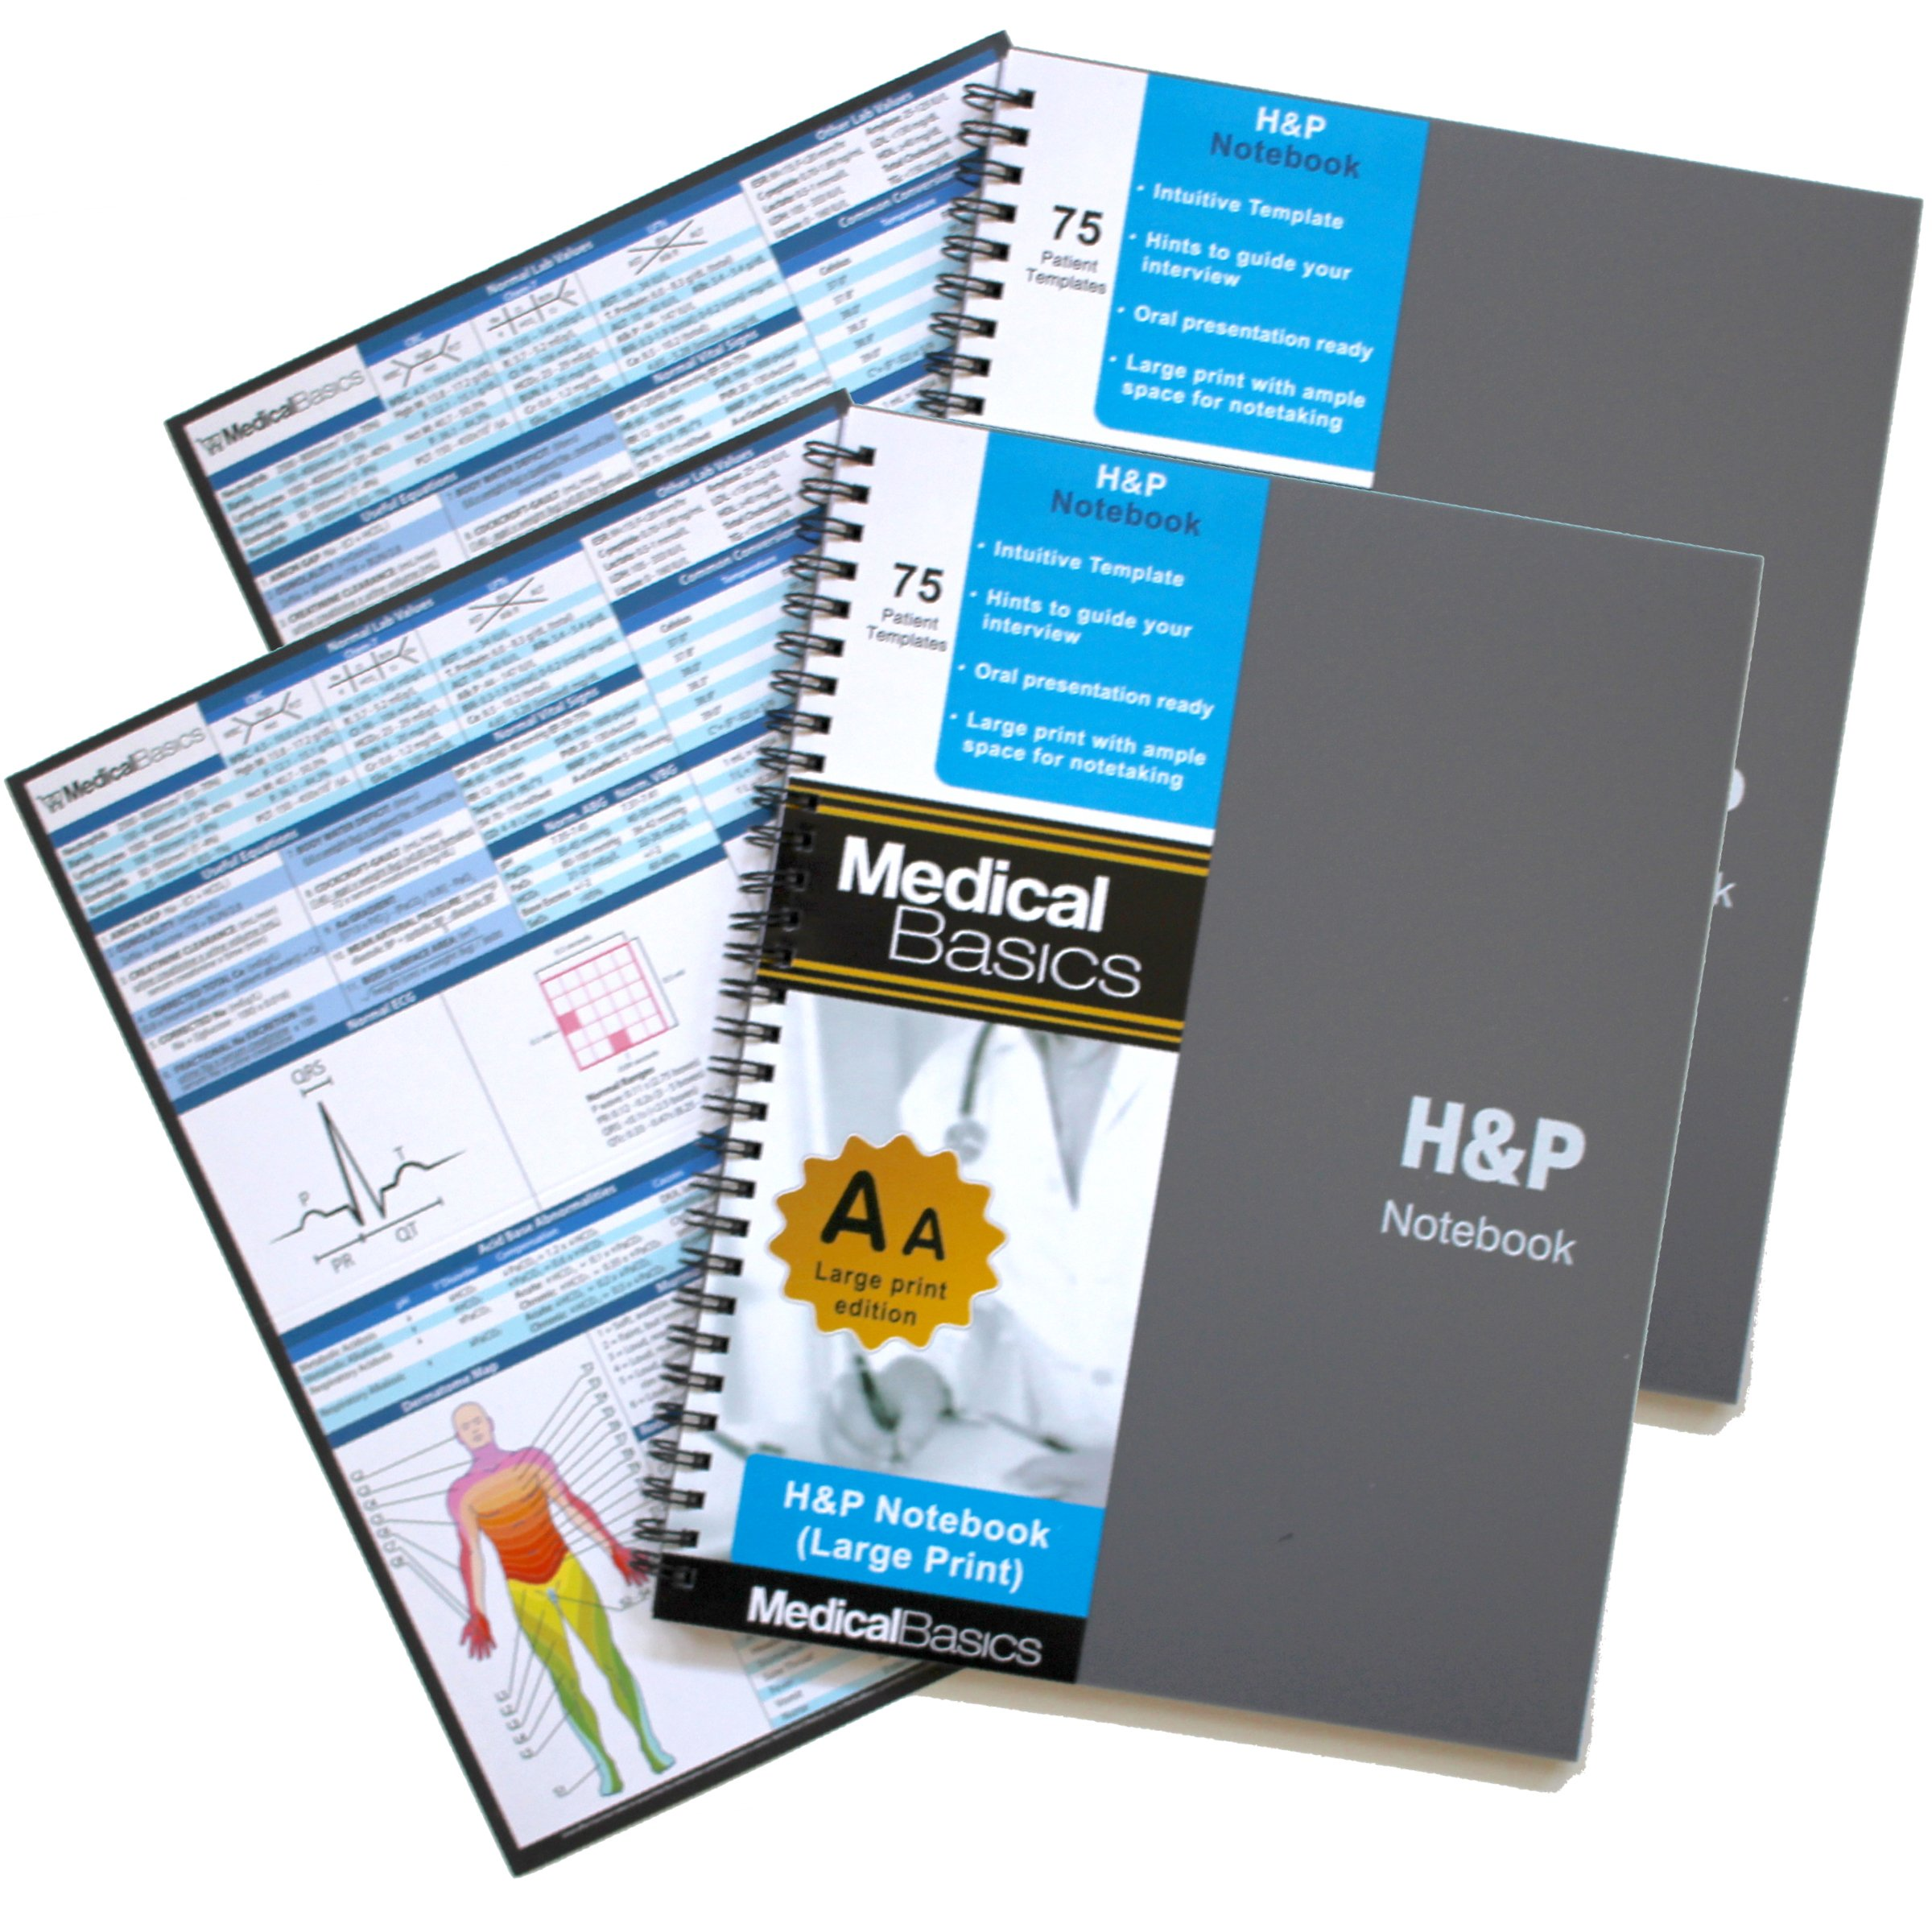 H&P Notebook Plus 8.5''x10'' (Large Print) - Medical History and Physical Notebook, 70 Medical templates with Perforations by Medical Basics